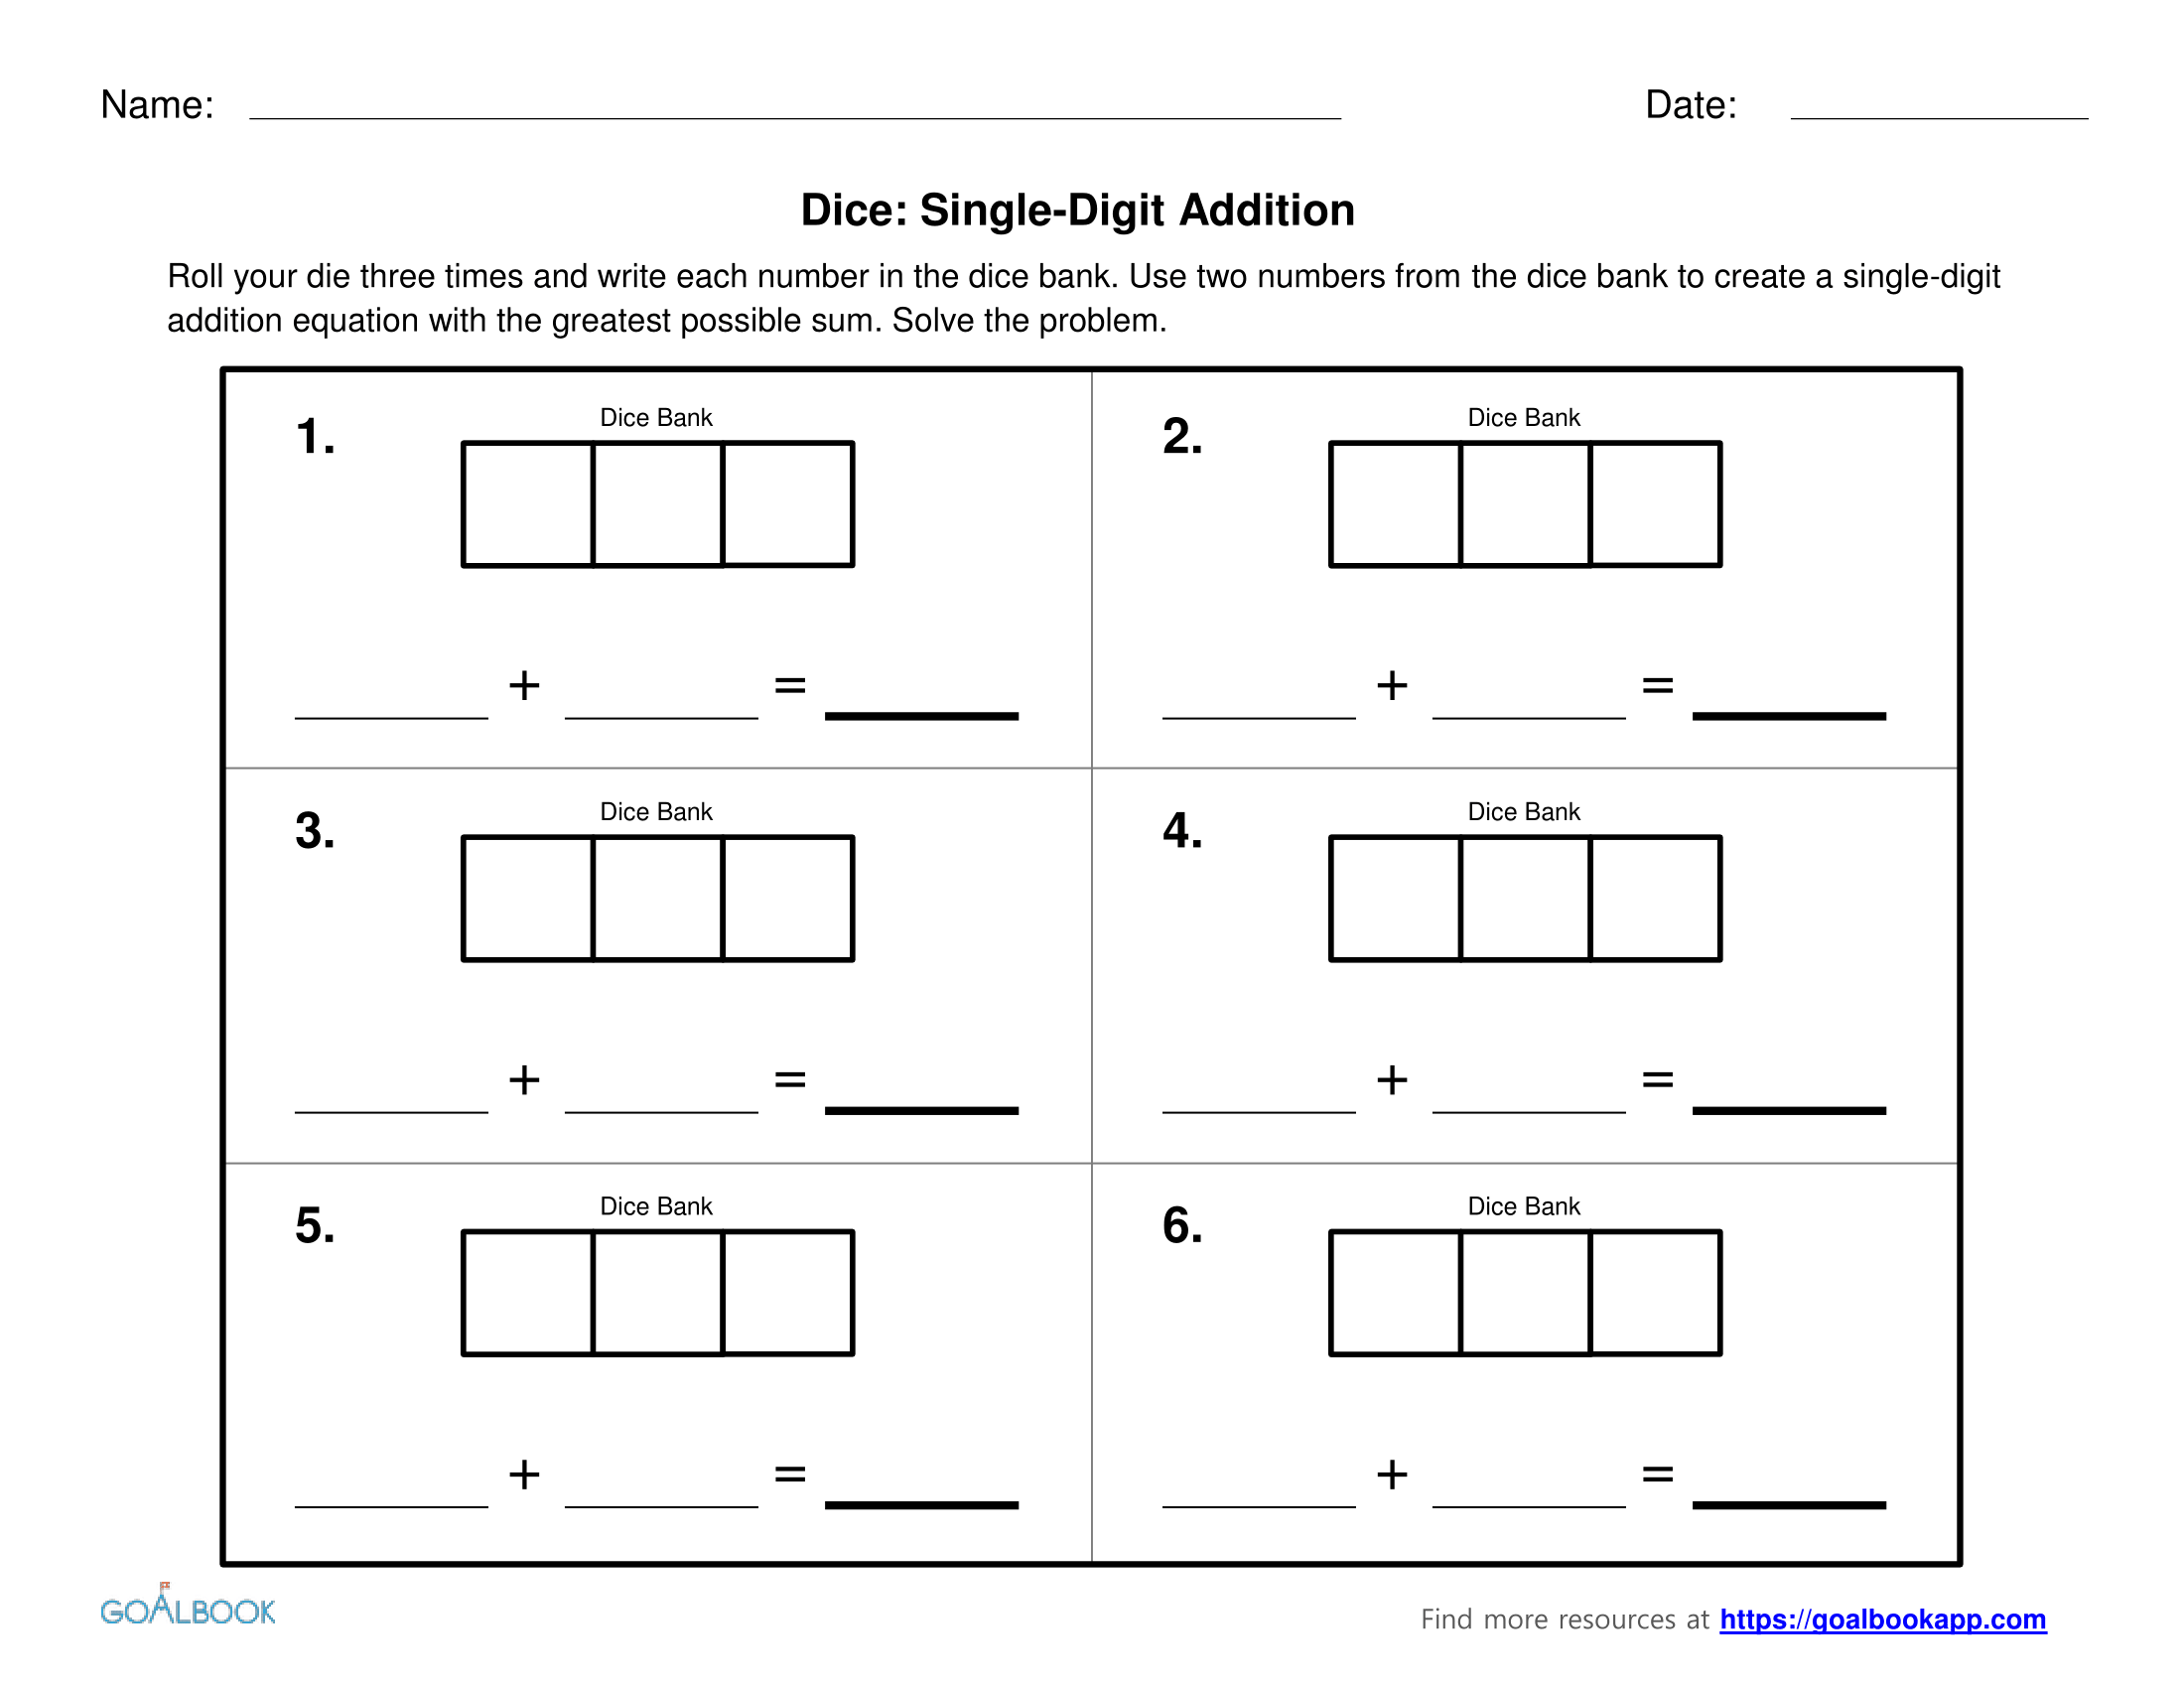 worksheet Single Digit Addition single digit addition and subtraction with dice goalbook pathways dice